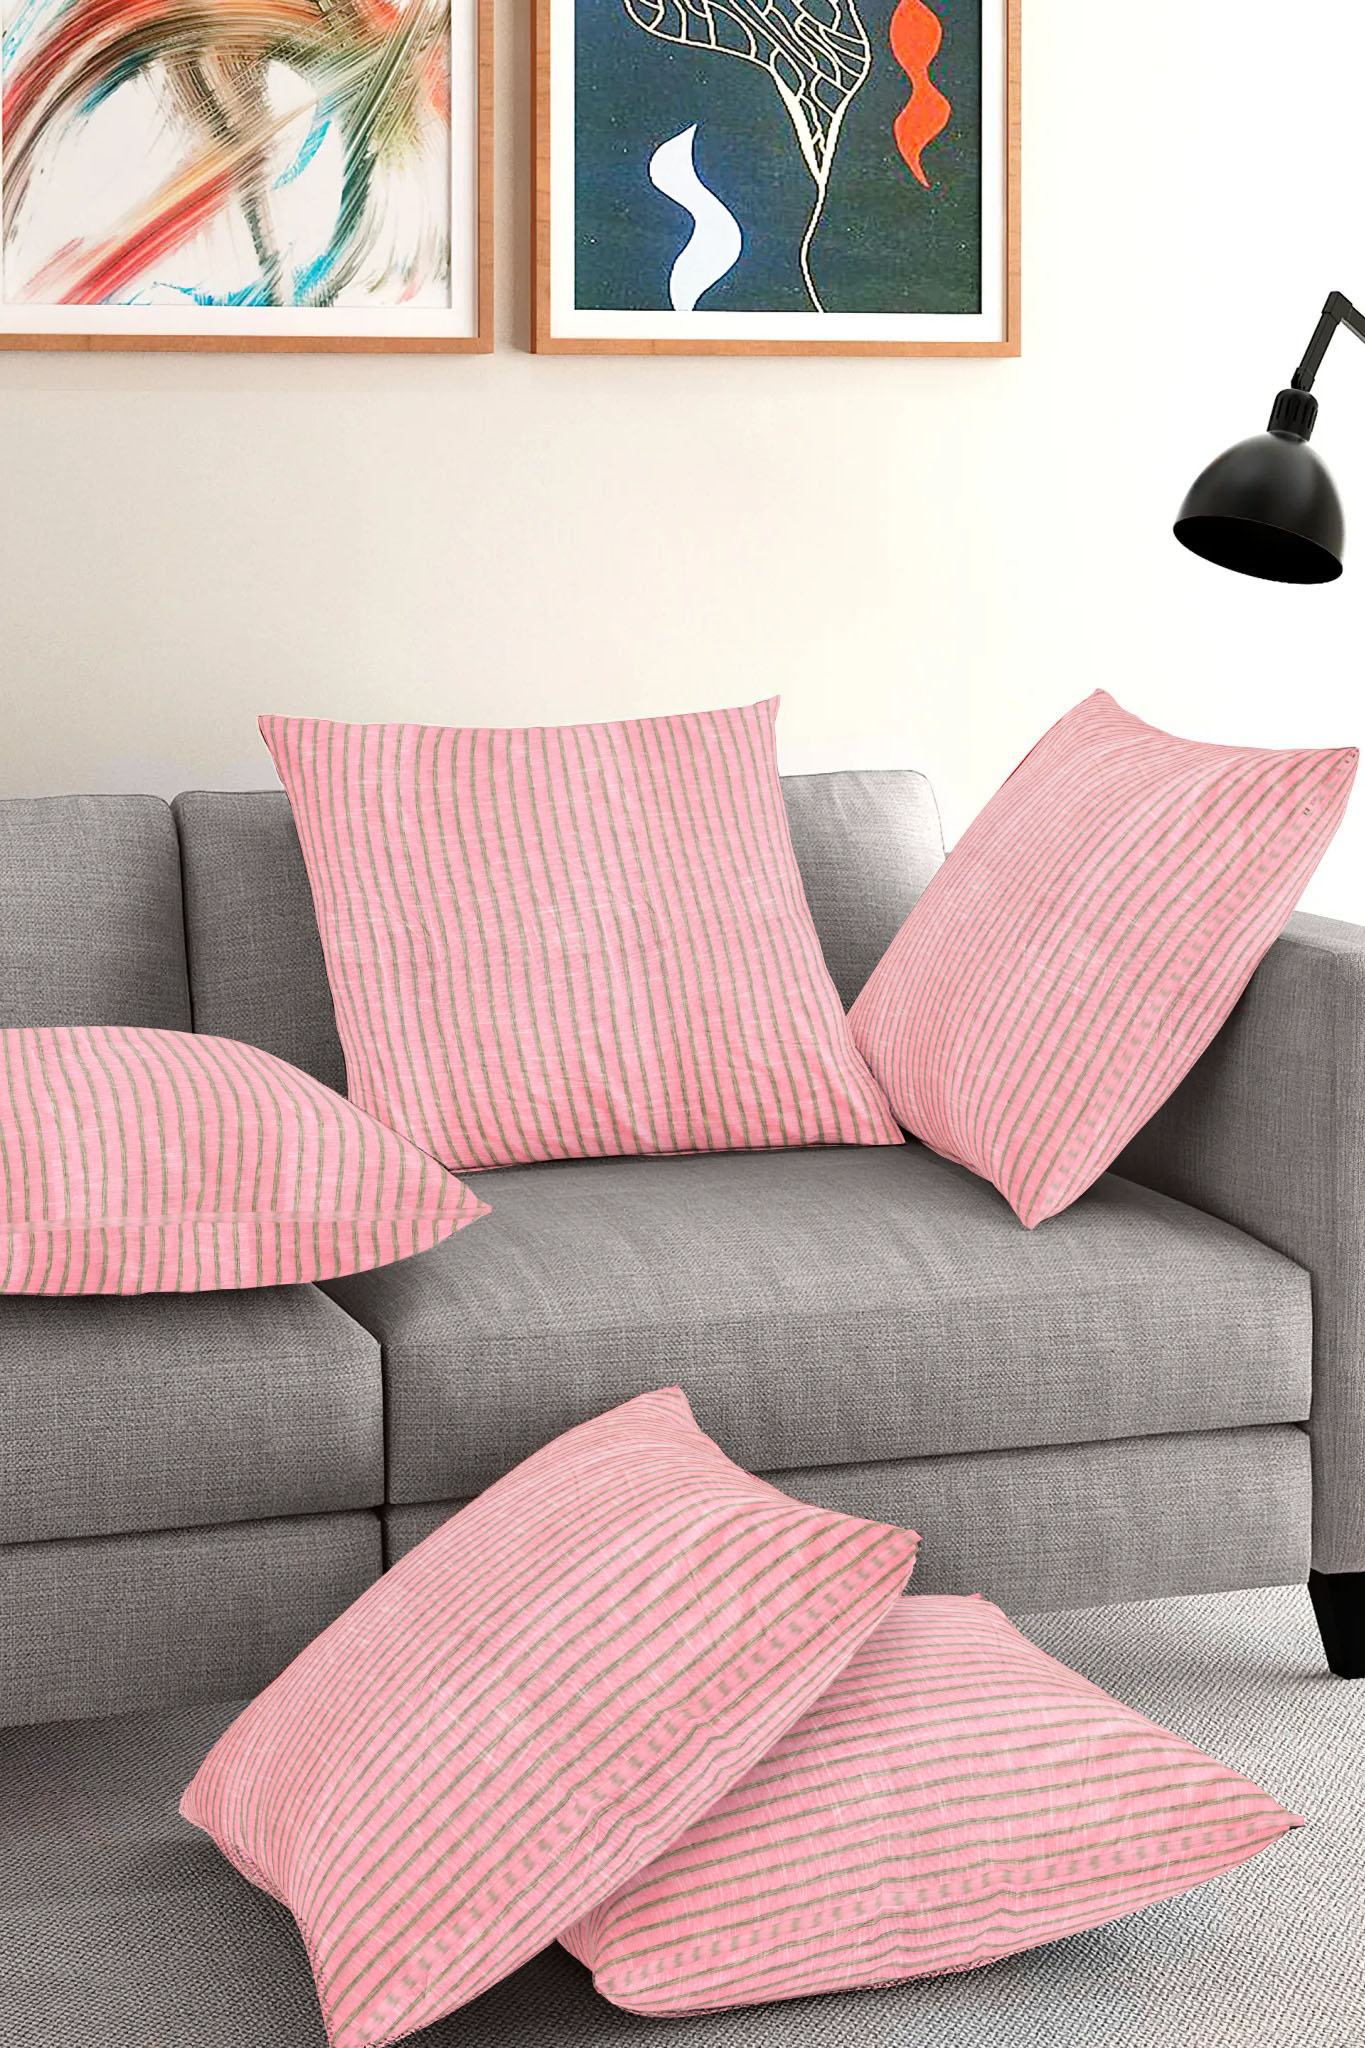 Set of 5-Pink Black Cotton Cushion Cover-35391-16x16 Inches